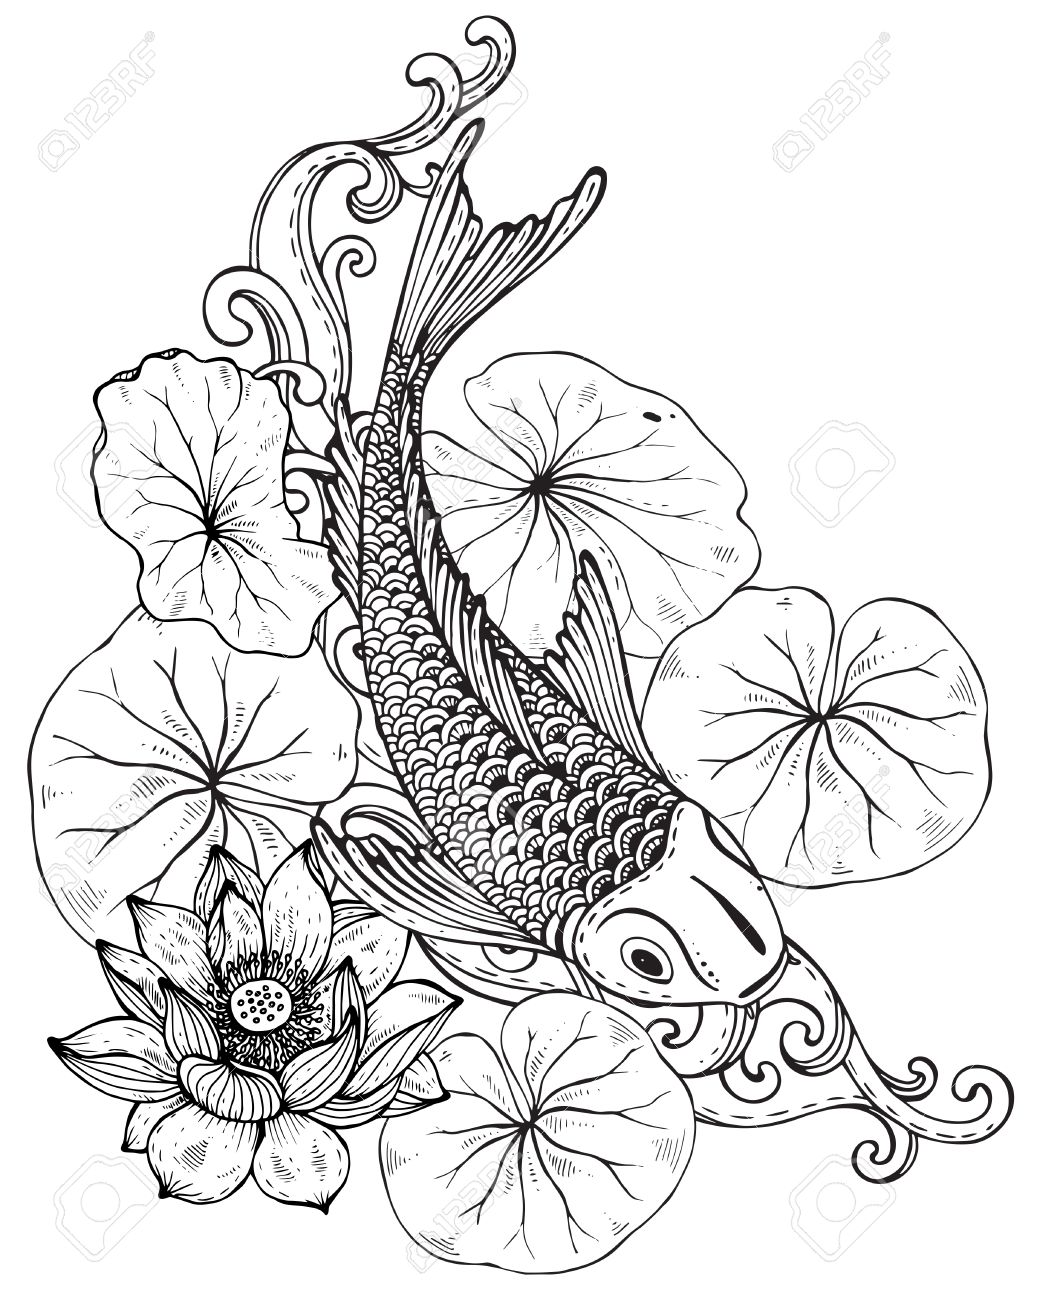 9ea2a730c465e Hand drawn vector illustration of Koi fish (Japanese carp) with lotus  leaves and flower. Symbol of love, friendship and prosperity. Black and  white image.